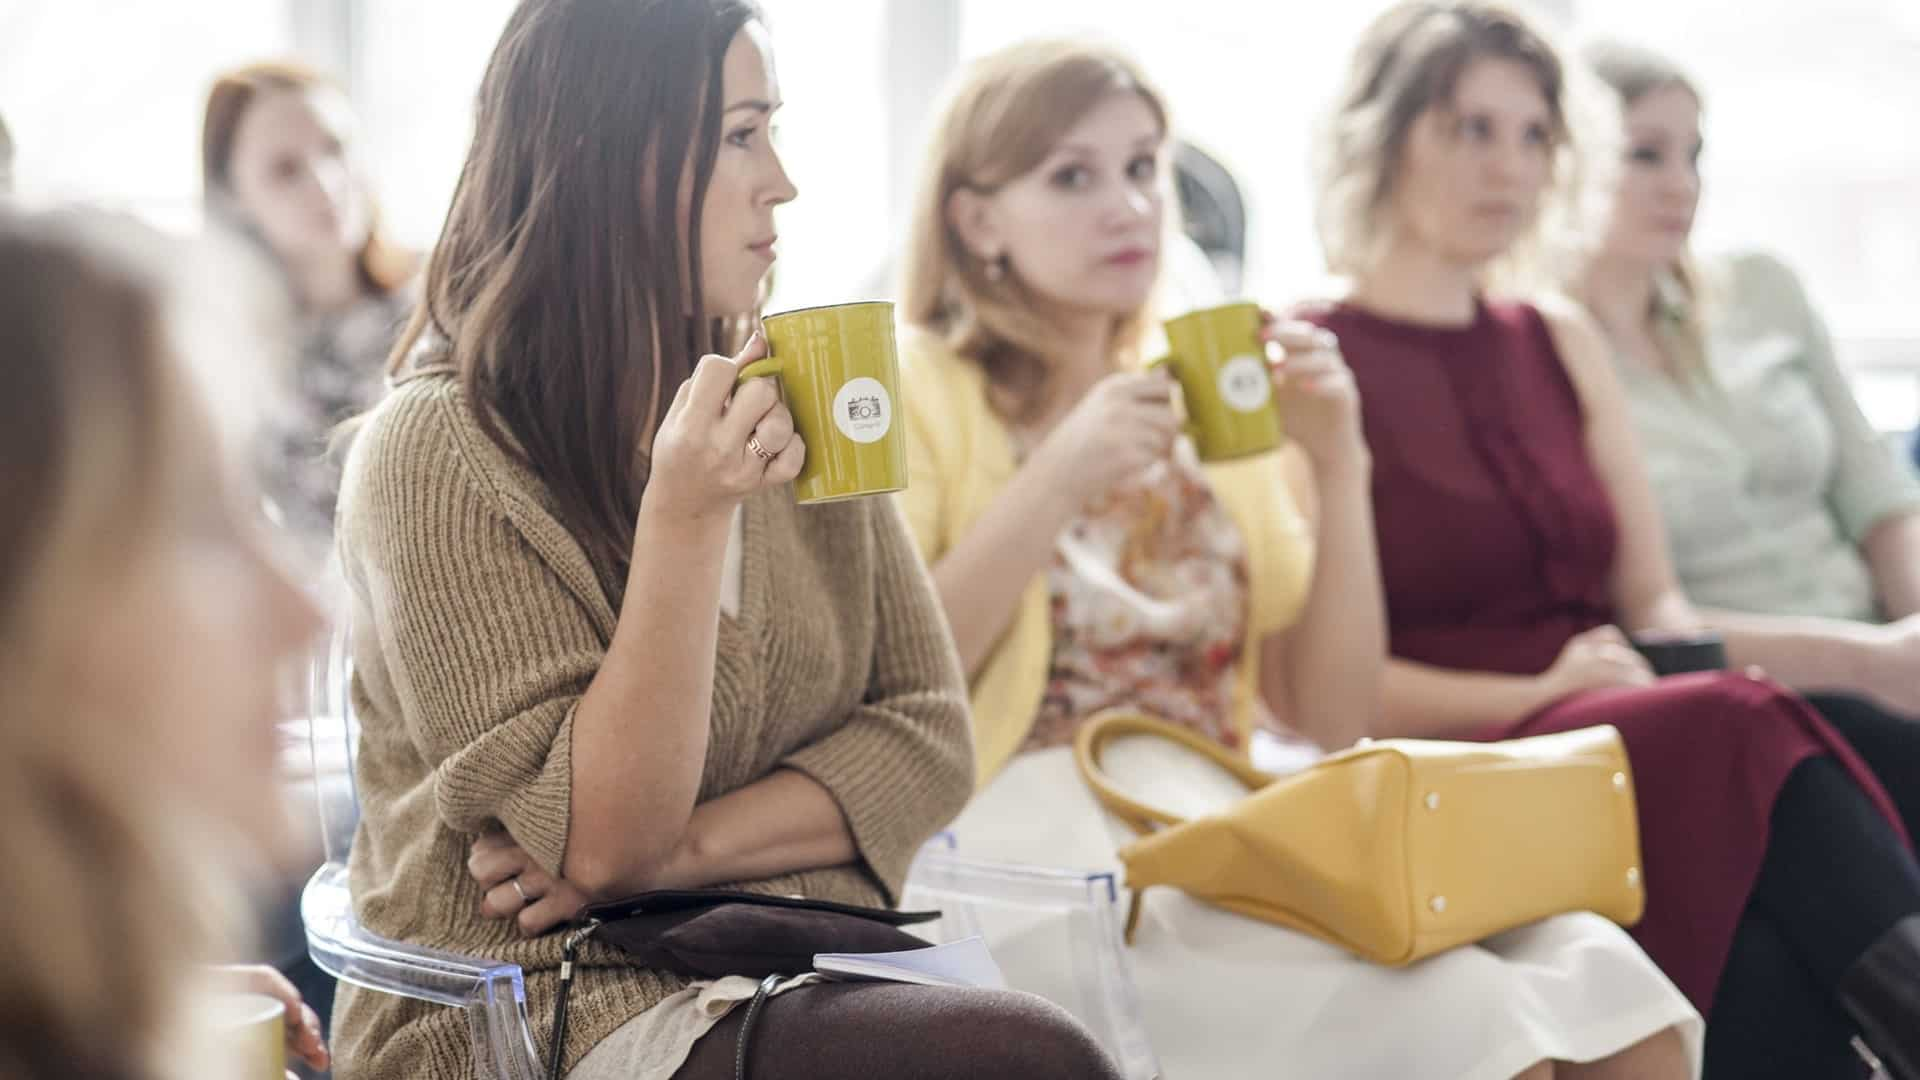 Group of women sitting drinking coffee